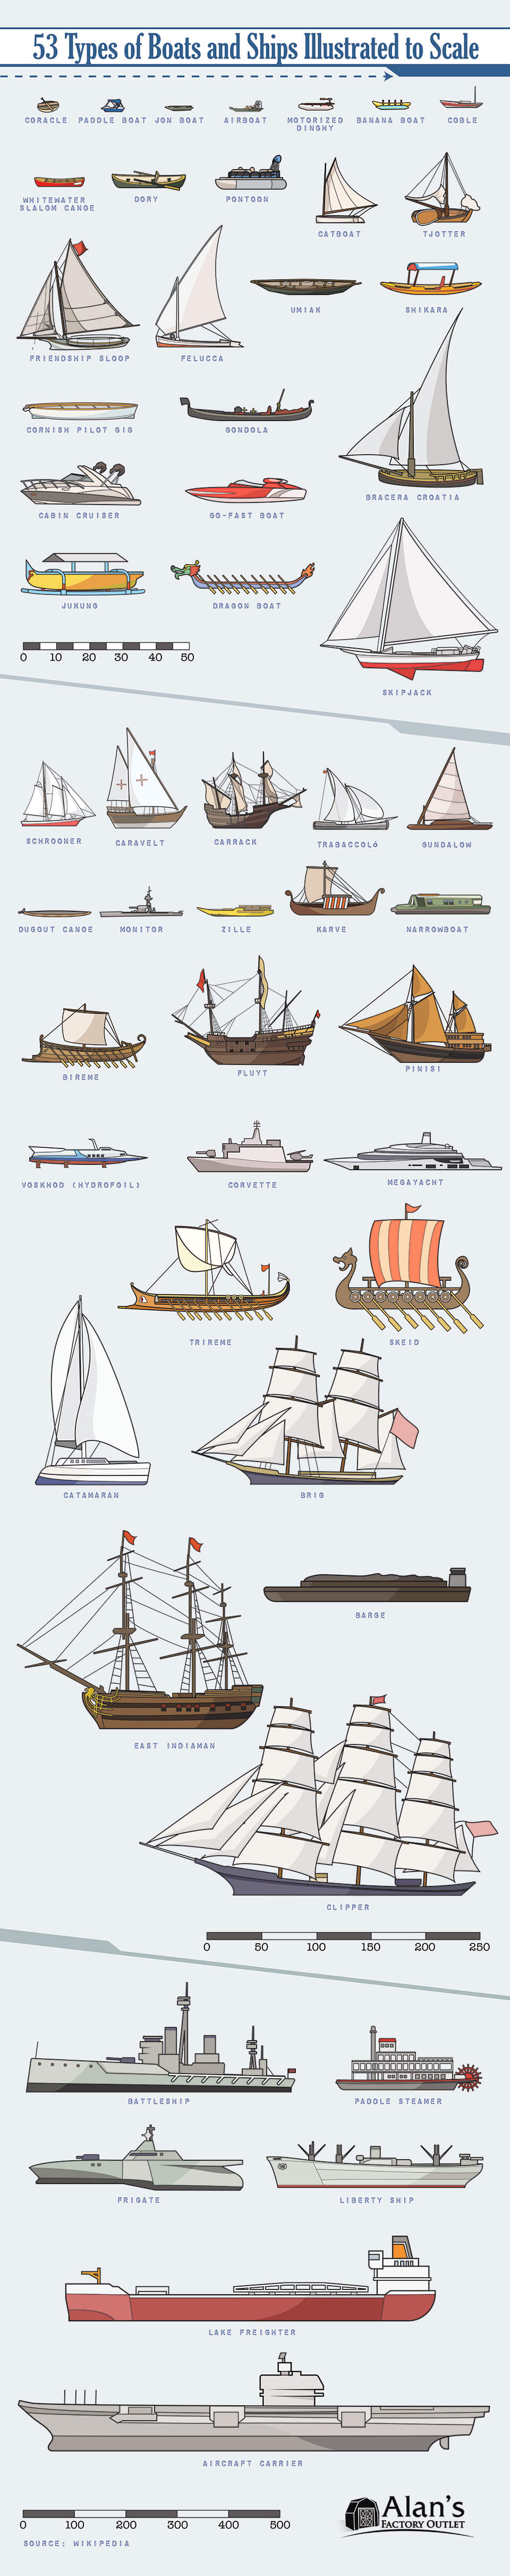 53 Types of Boats and Ships Illustrated to Scale